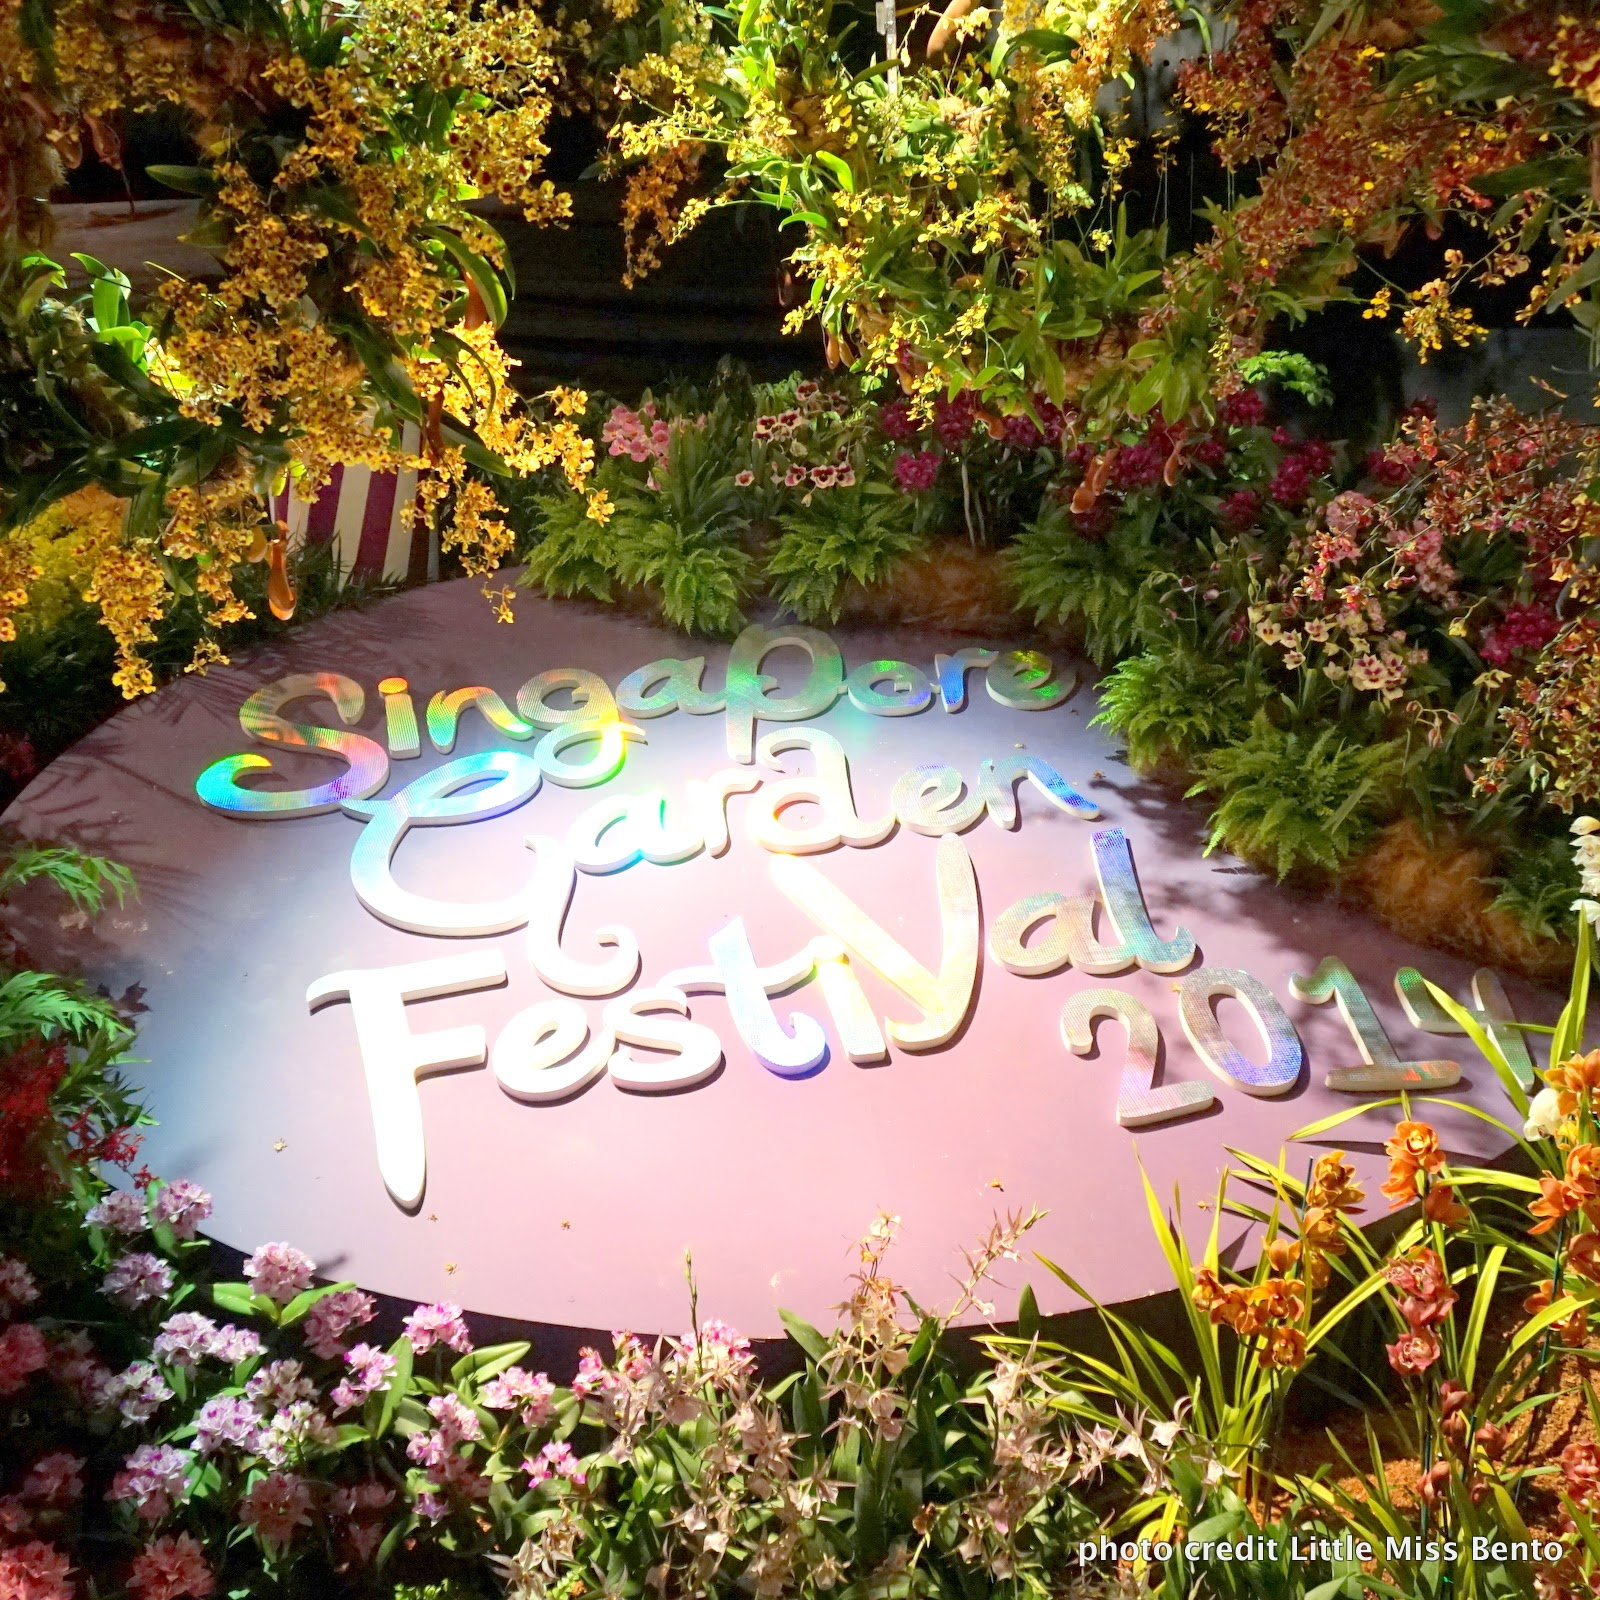 2014 returns for this year from 16 to 24 august 2014 at a new location gardens by the bay a magical garden experience with 50 gardens and flower